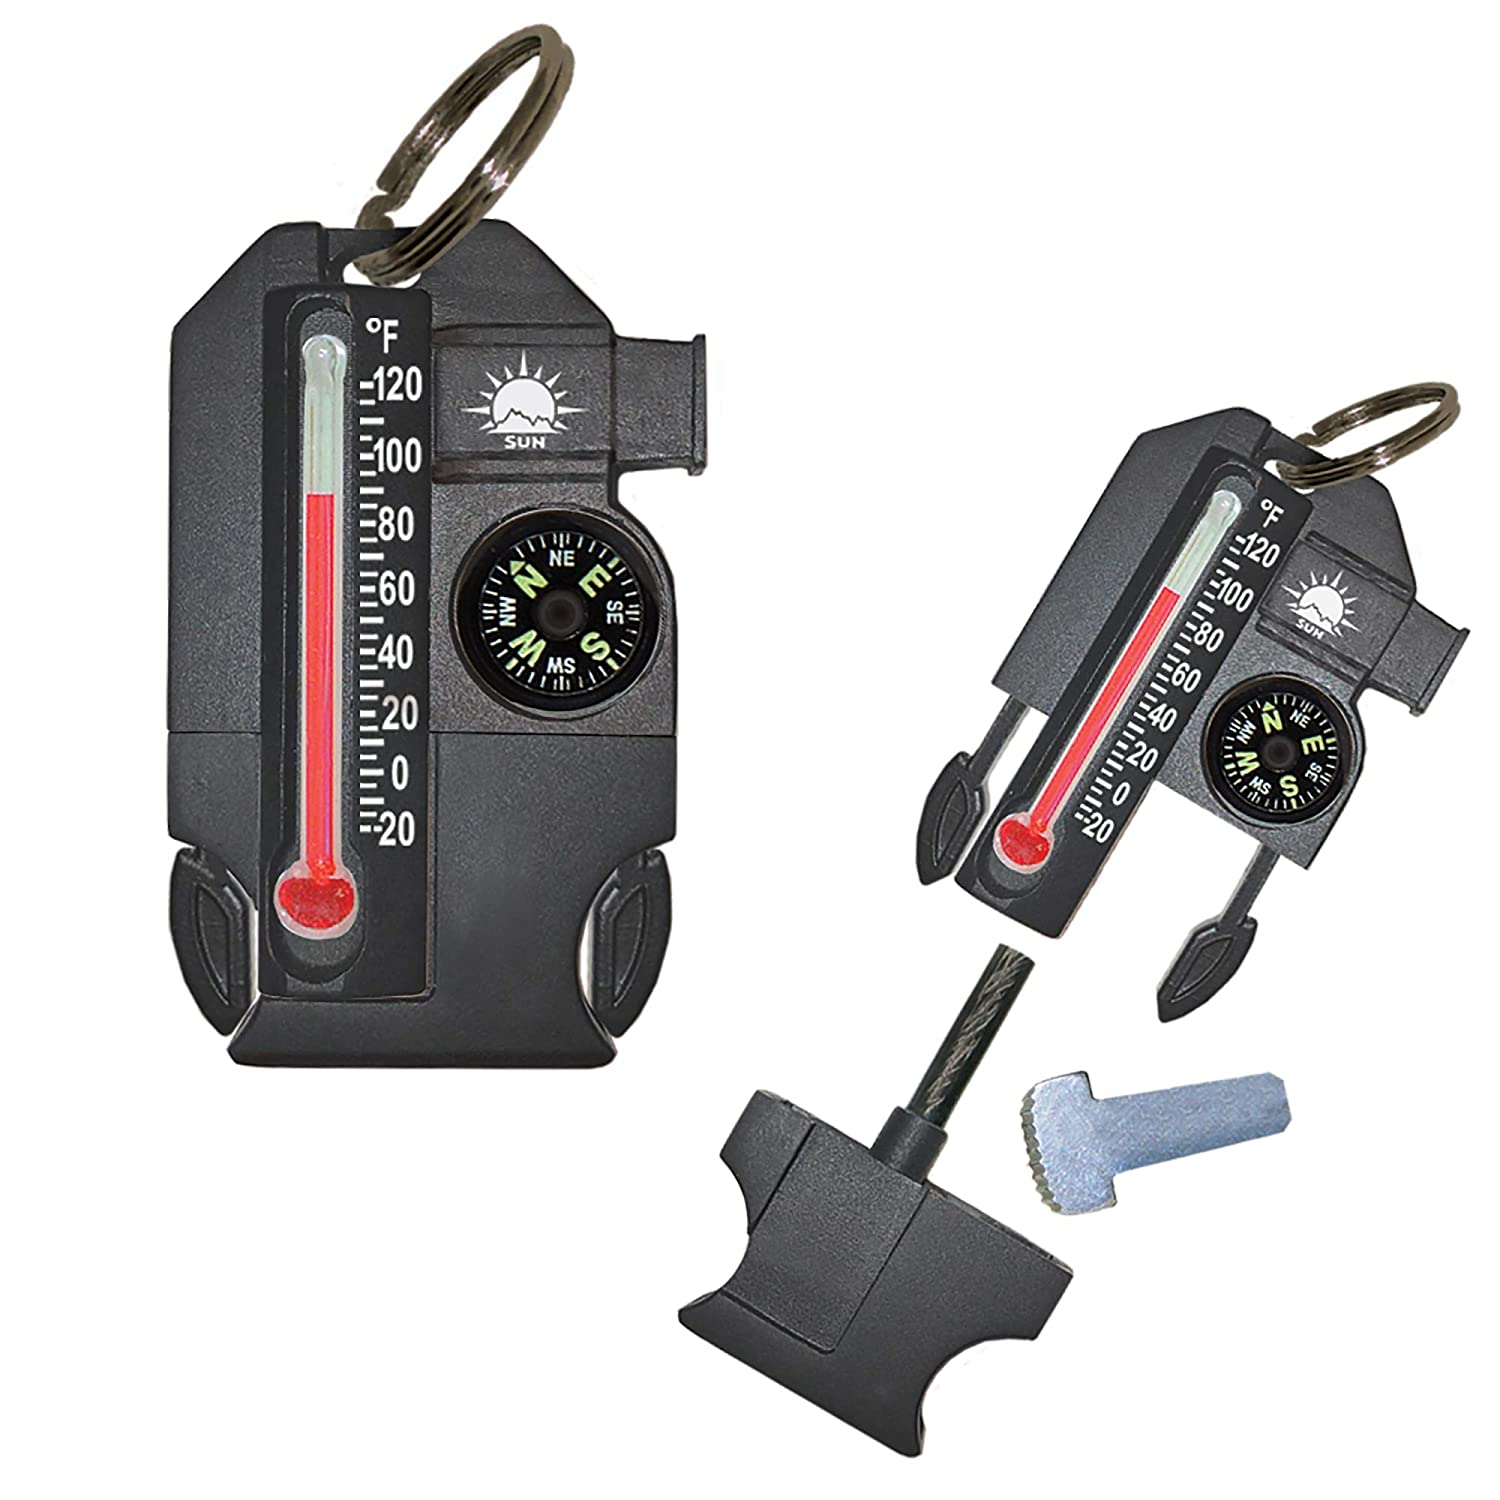 Sun Company Outsider – 4-in-1 Survival Multi-Tool Compass, Thermometer, Whistle, and Fire Starter in a Compact Zipperpull